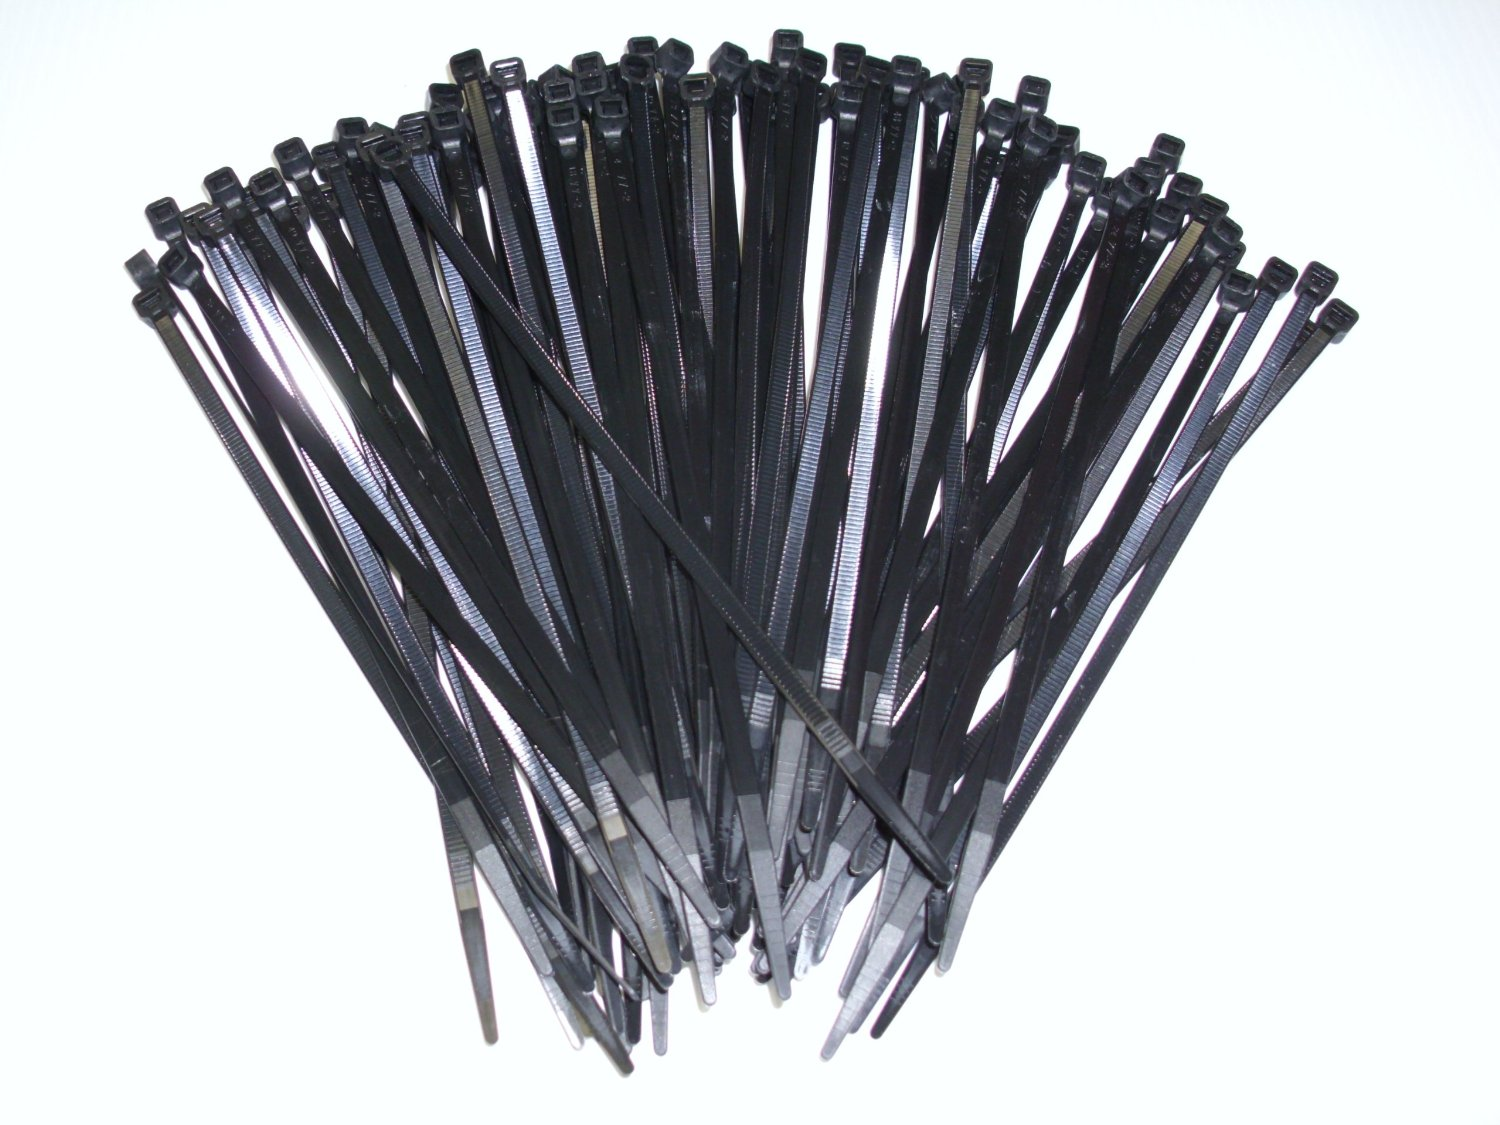 TeamSN 100pcs 3x150mm Nylon Self-Locking Cable Tie - BLACK - SNHE